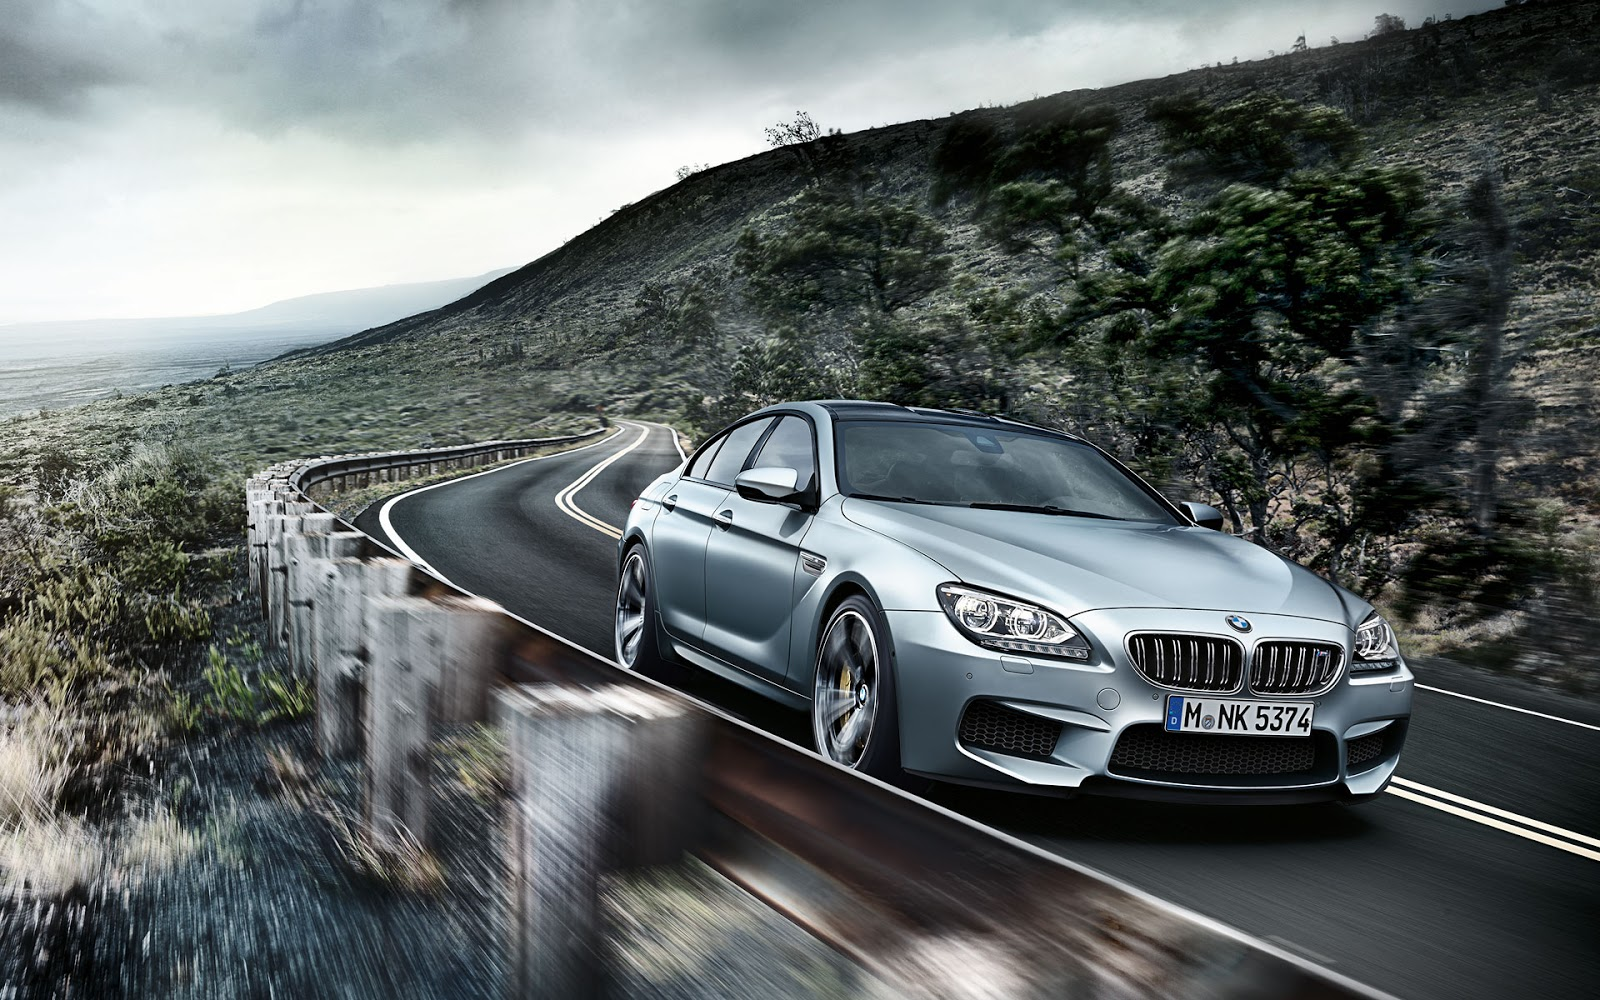 Epic Car Wallpapers: Epic 2014 BMW M6 Gran Coupe Wallpapers (Gallery)